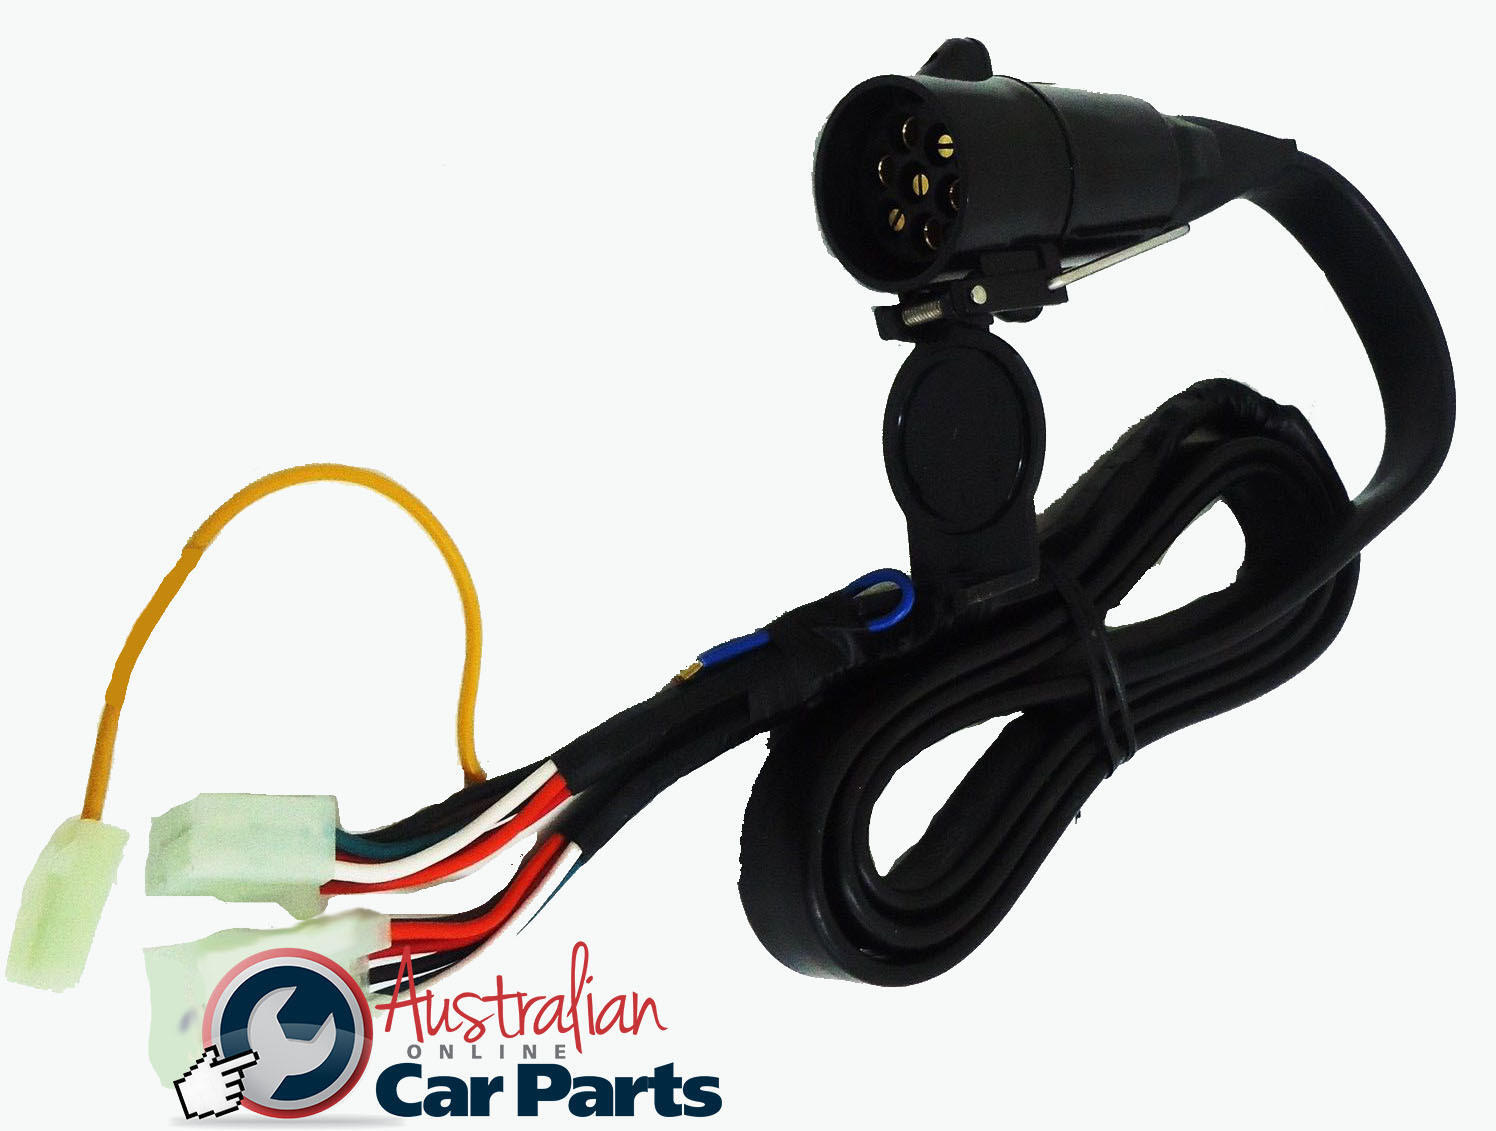 92140147 commodore trailer wiring harness vt vx vy vz holden genuine round,Holden Genuine New Trailer Wiring Harness Suits Vt Vx